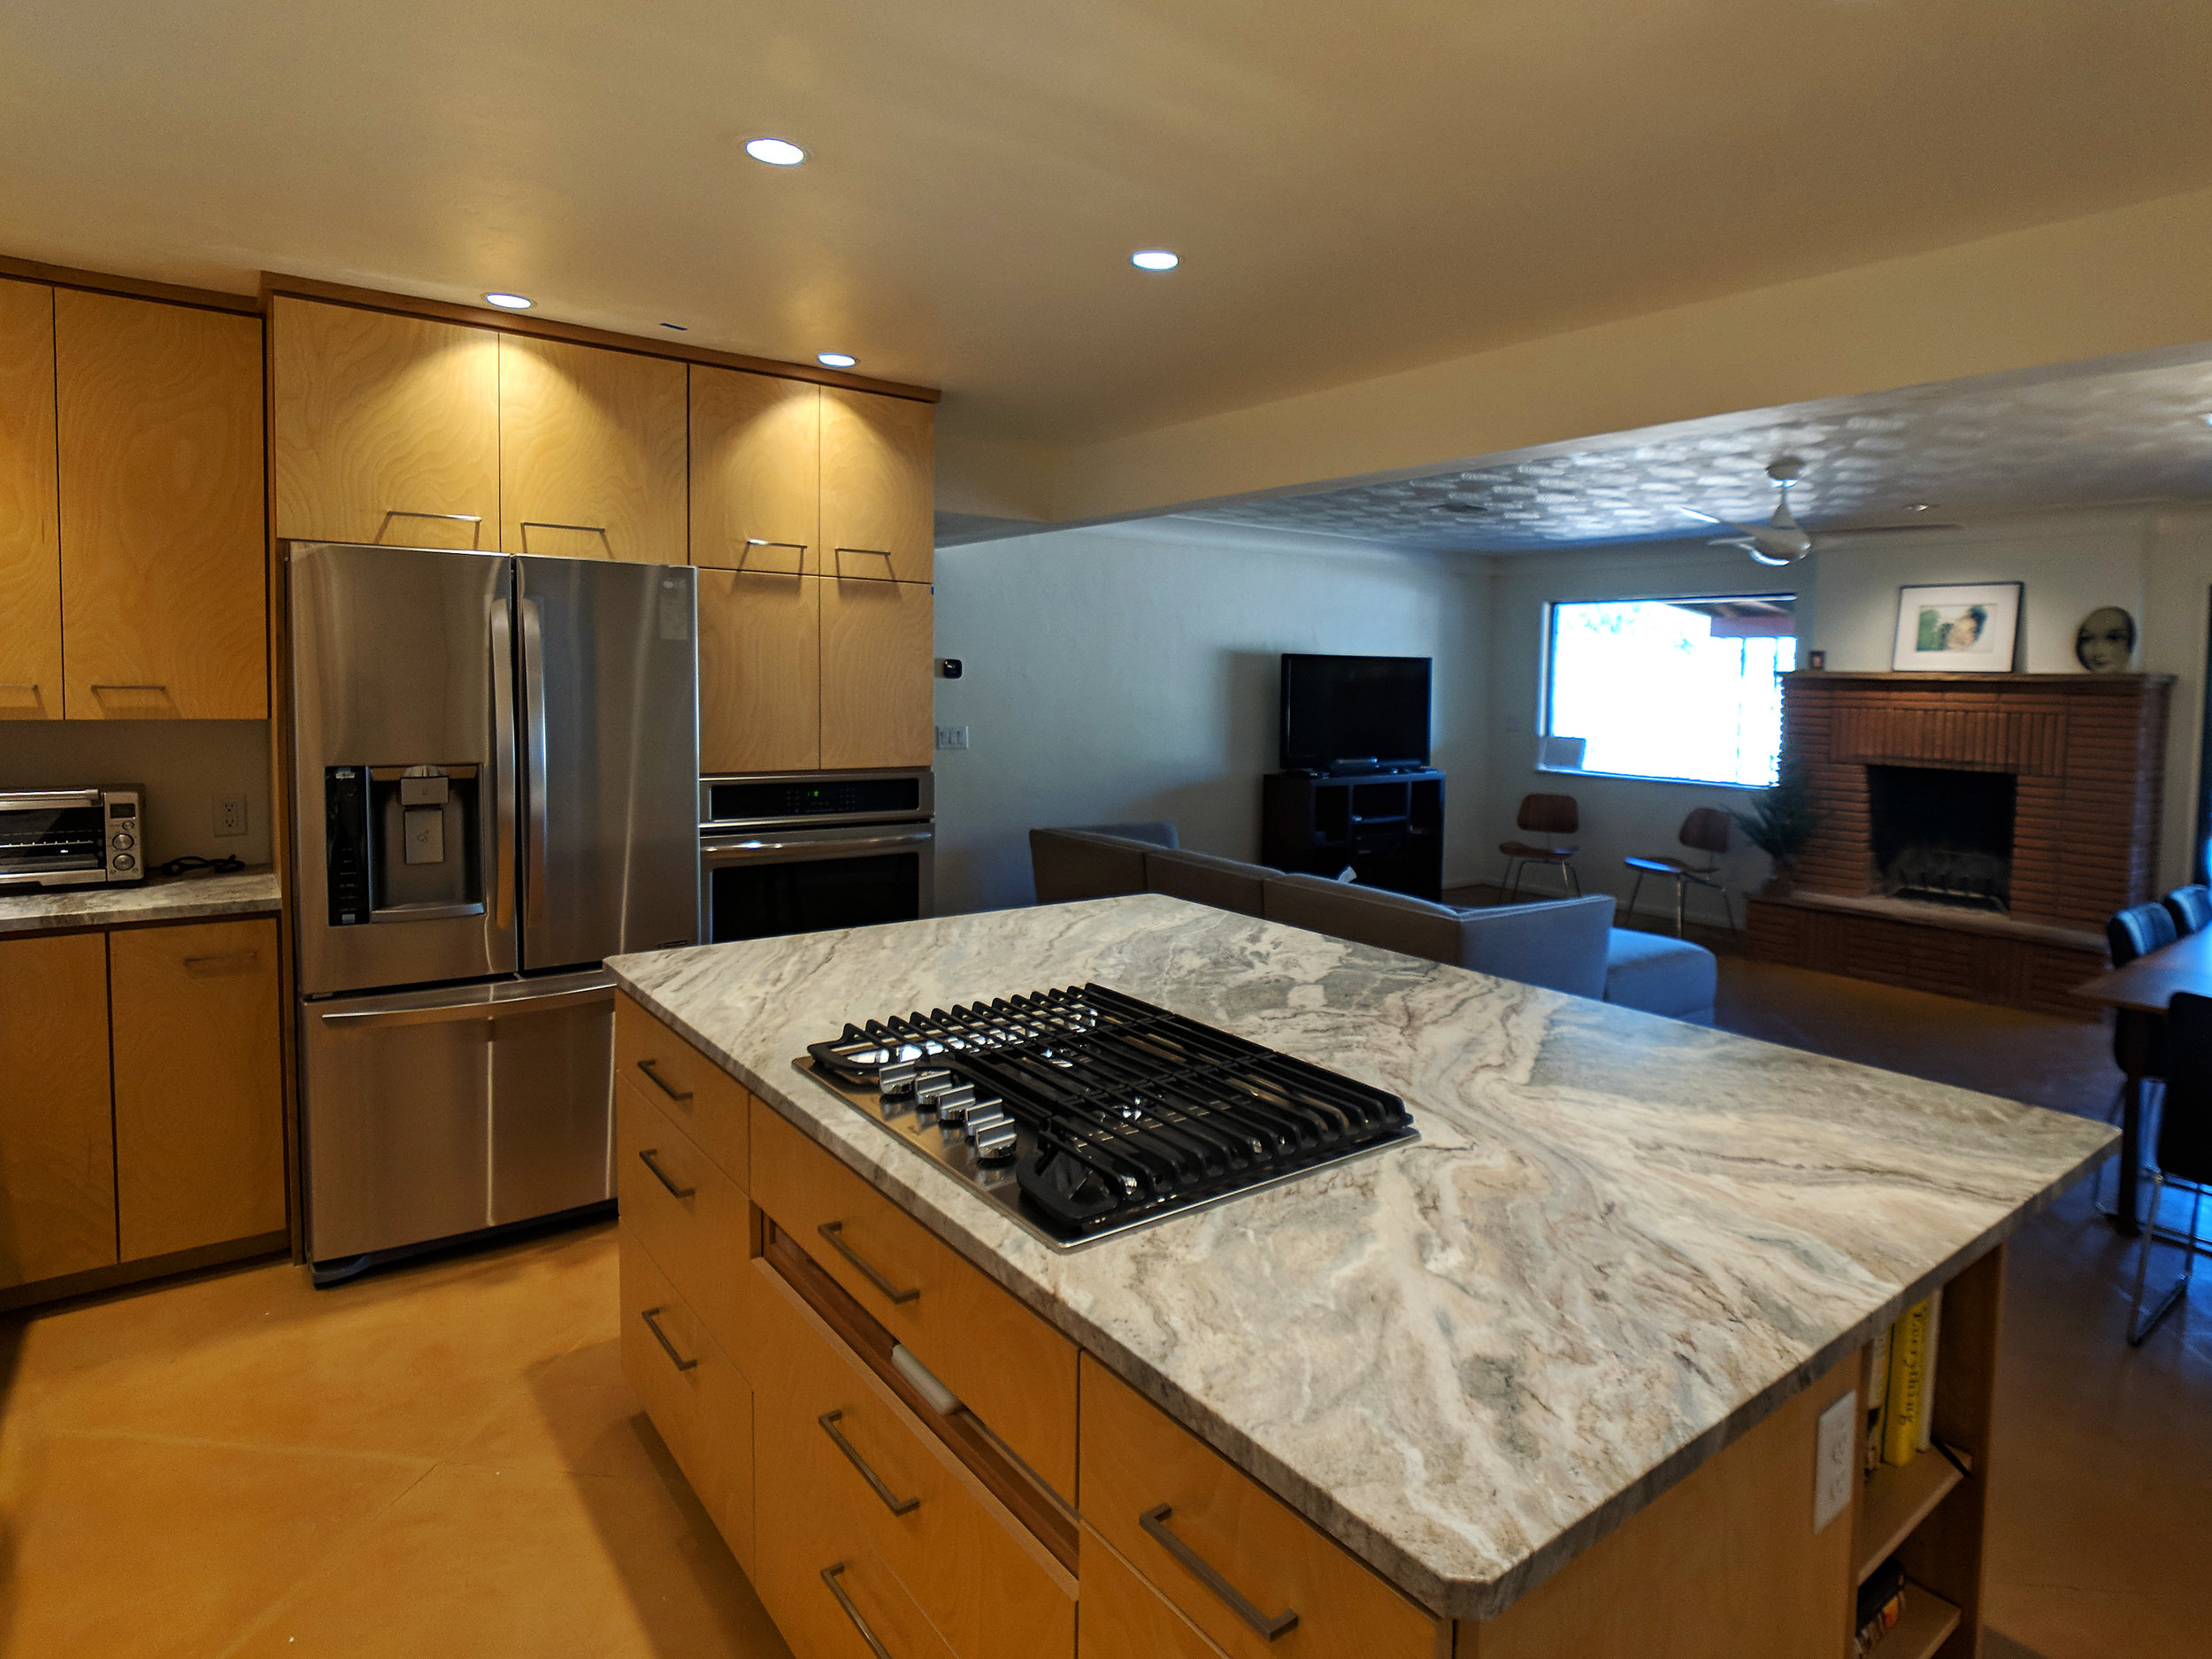 holland-kitchen-fantasy-brown-granite.jpg